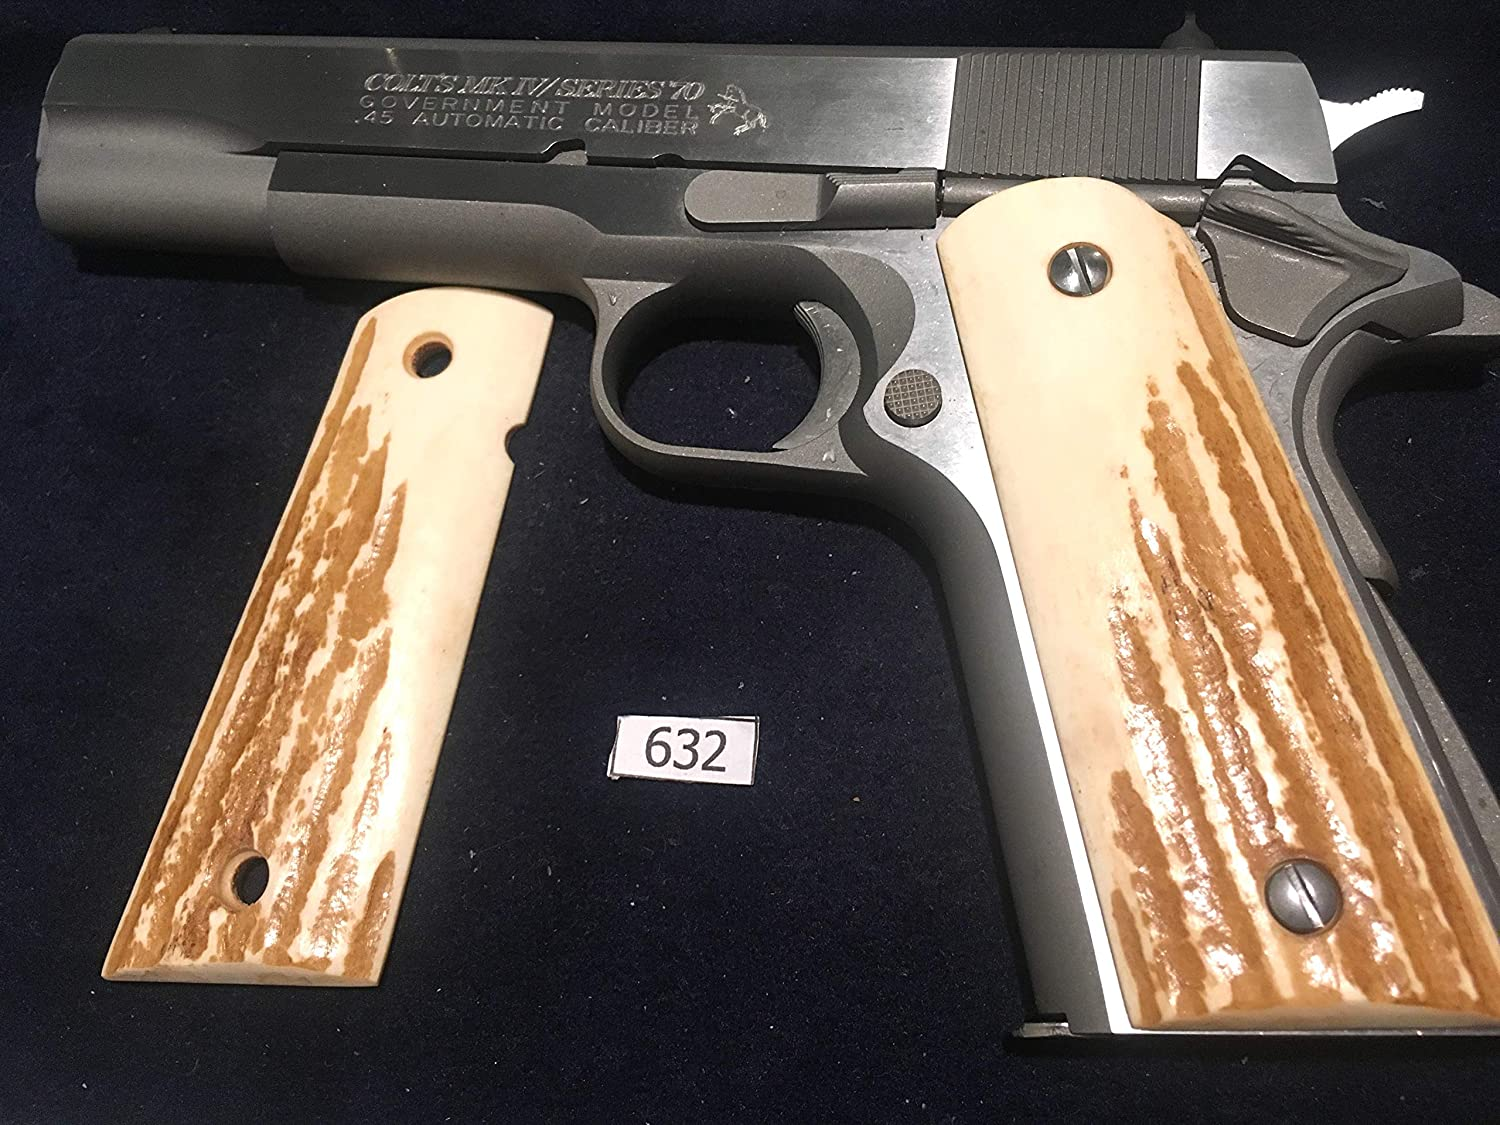 1911 Grips Genuine Elk Stag,FITS COLT,KIMBER,SIG,PARA,RUGER,TAURUS,SPRINGFIELD,REMINGTON,WILSON,ACE,ITHACA,CLONES